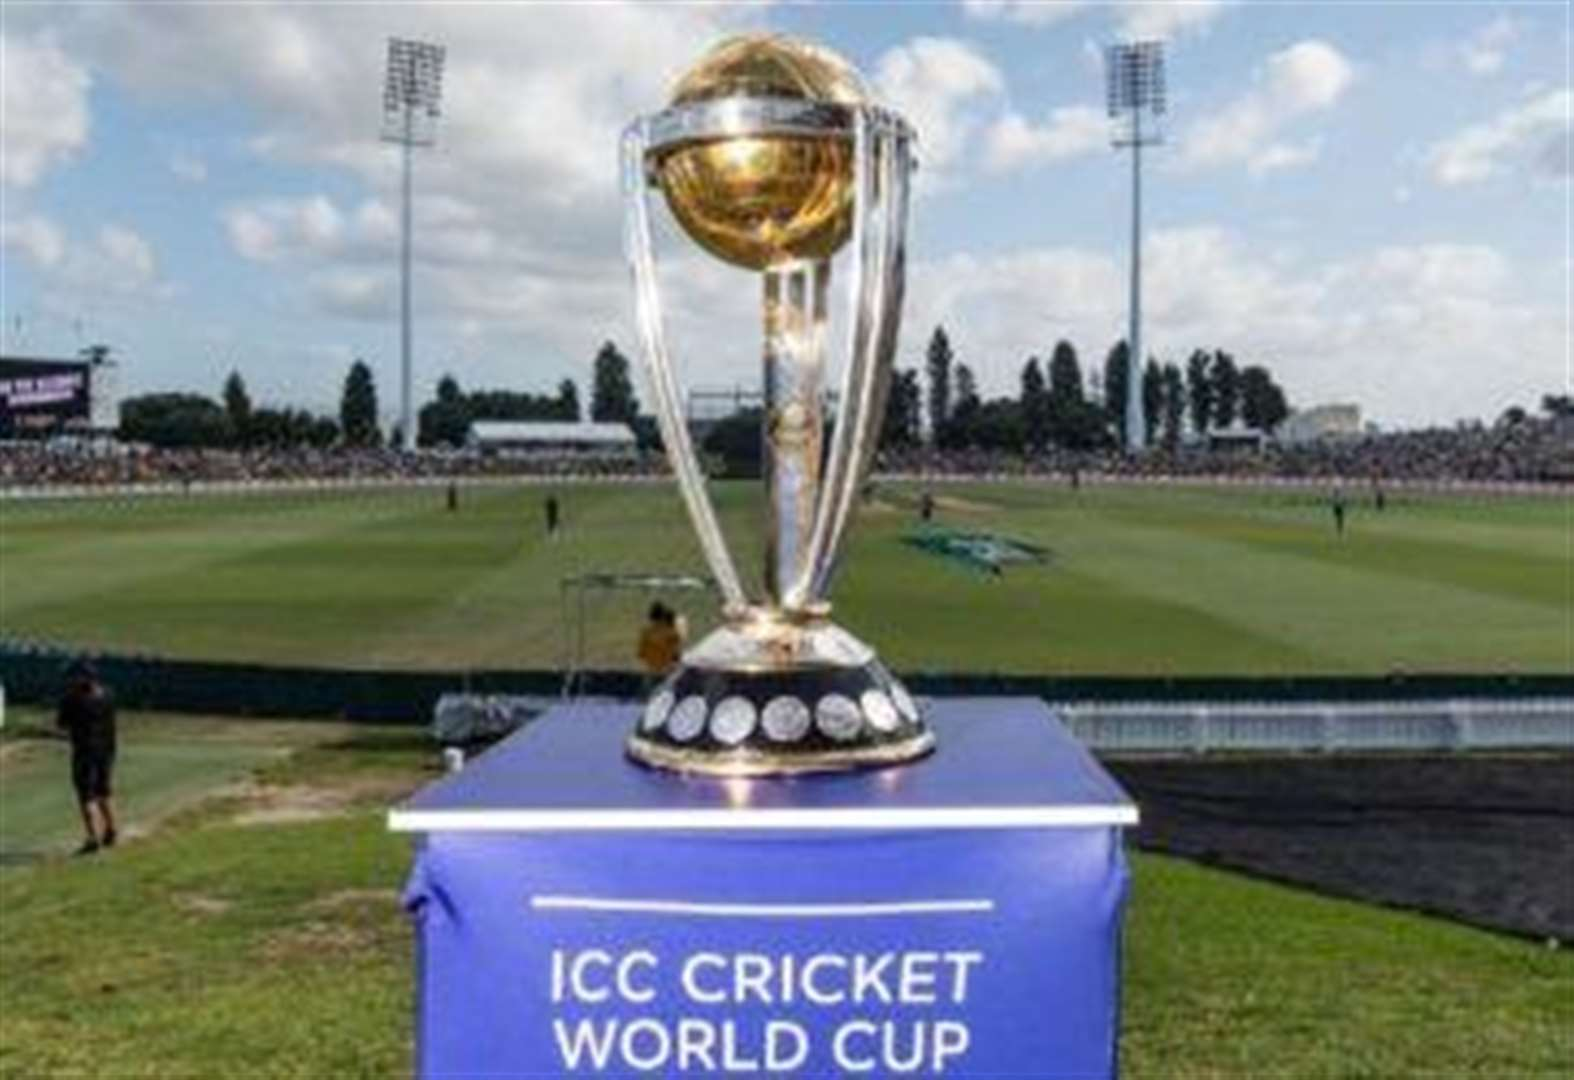 Cricket World Cup trophy coming to Kent